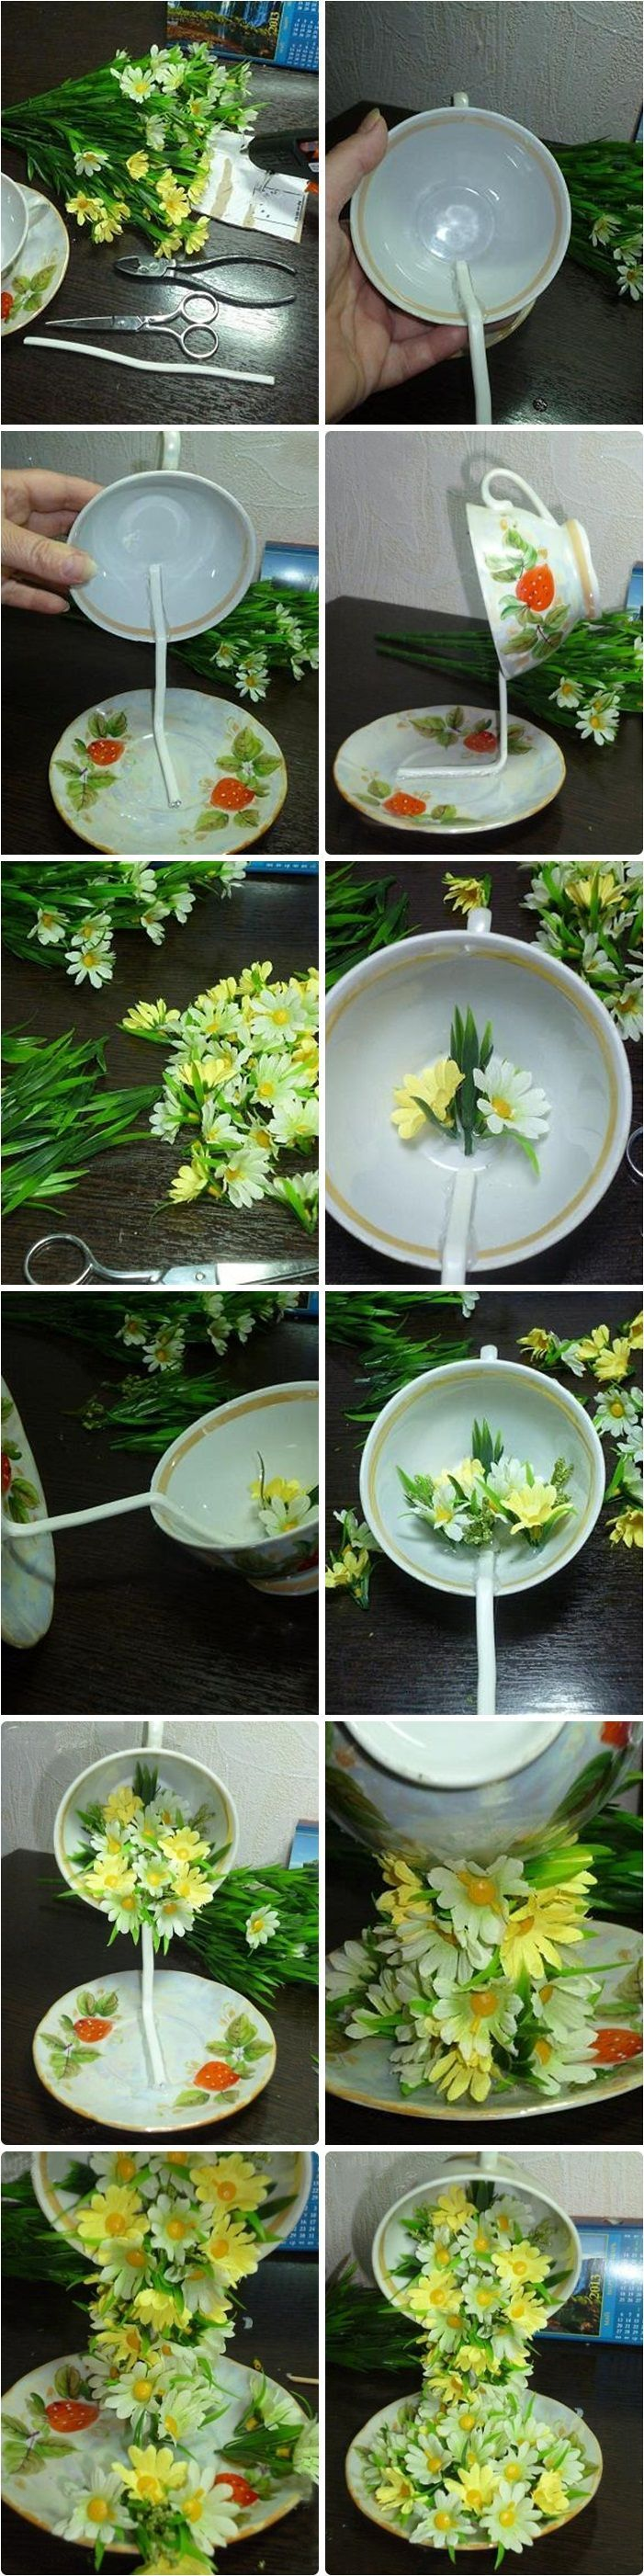 "Tea Cup Floral Cascade ~ step by step tutorial on how to create the illusion of flowers spilling into a saucer from a ""floating"" cup (and various suggested arrangements) at diy-enthusiasts:"